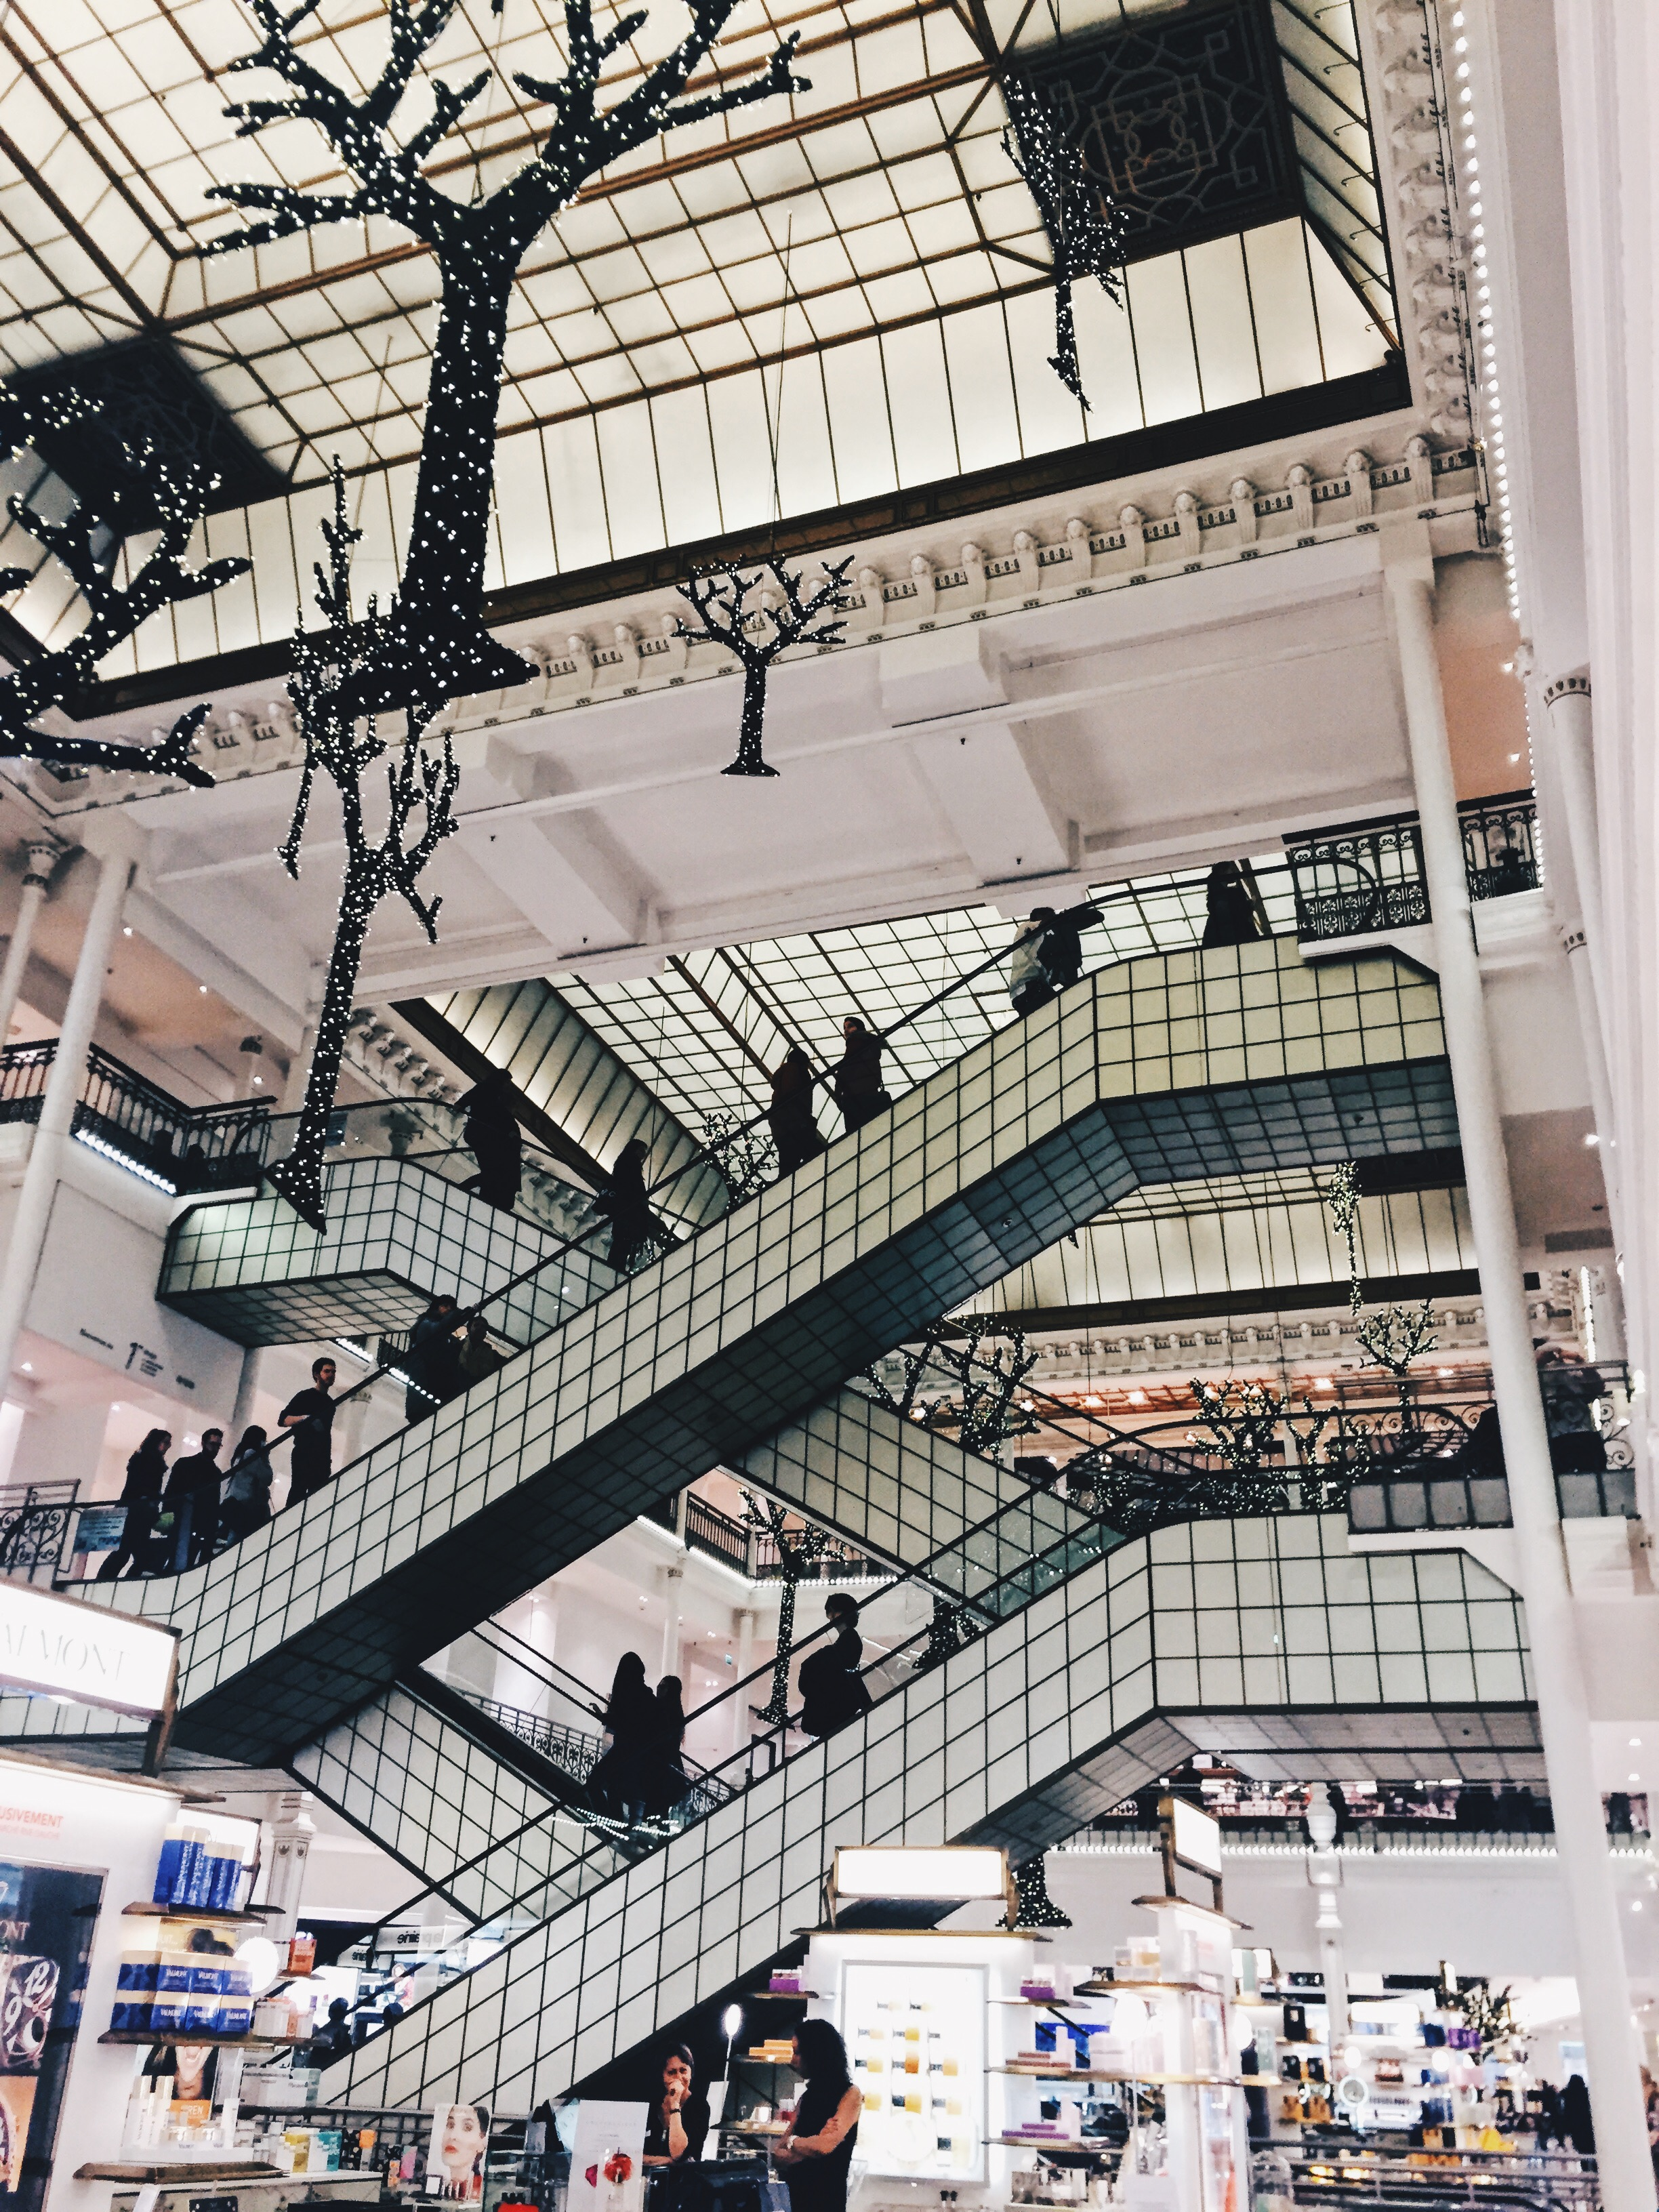 Le Bon Marché - photo taken in 2015